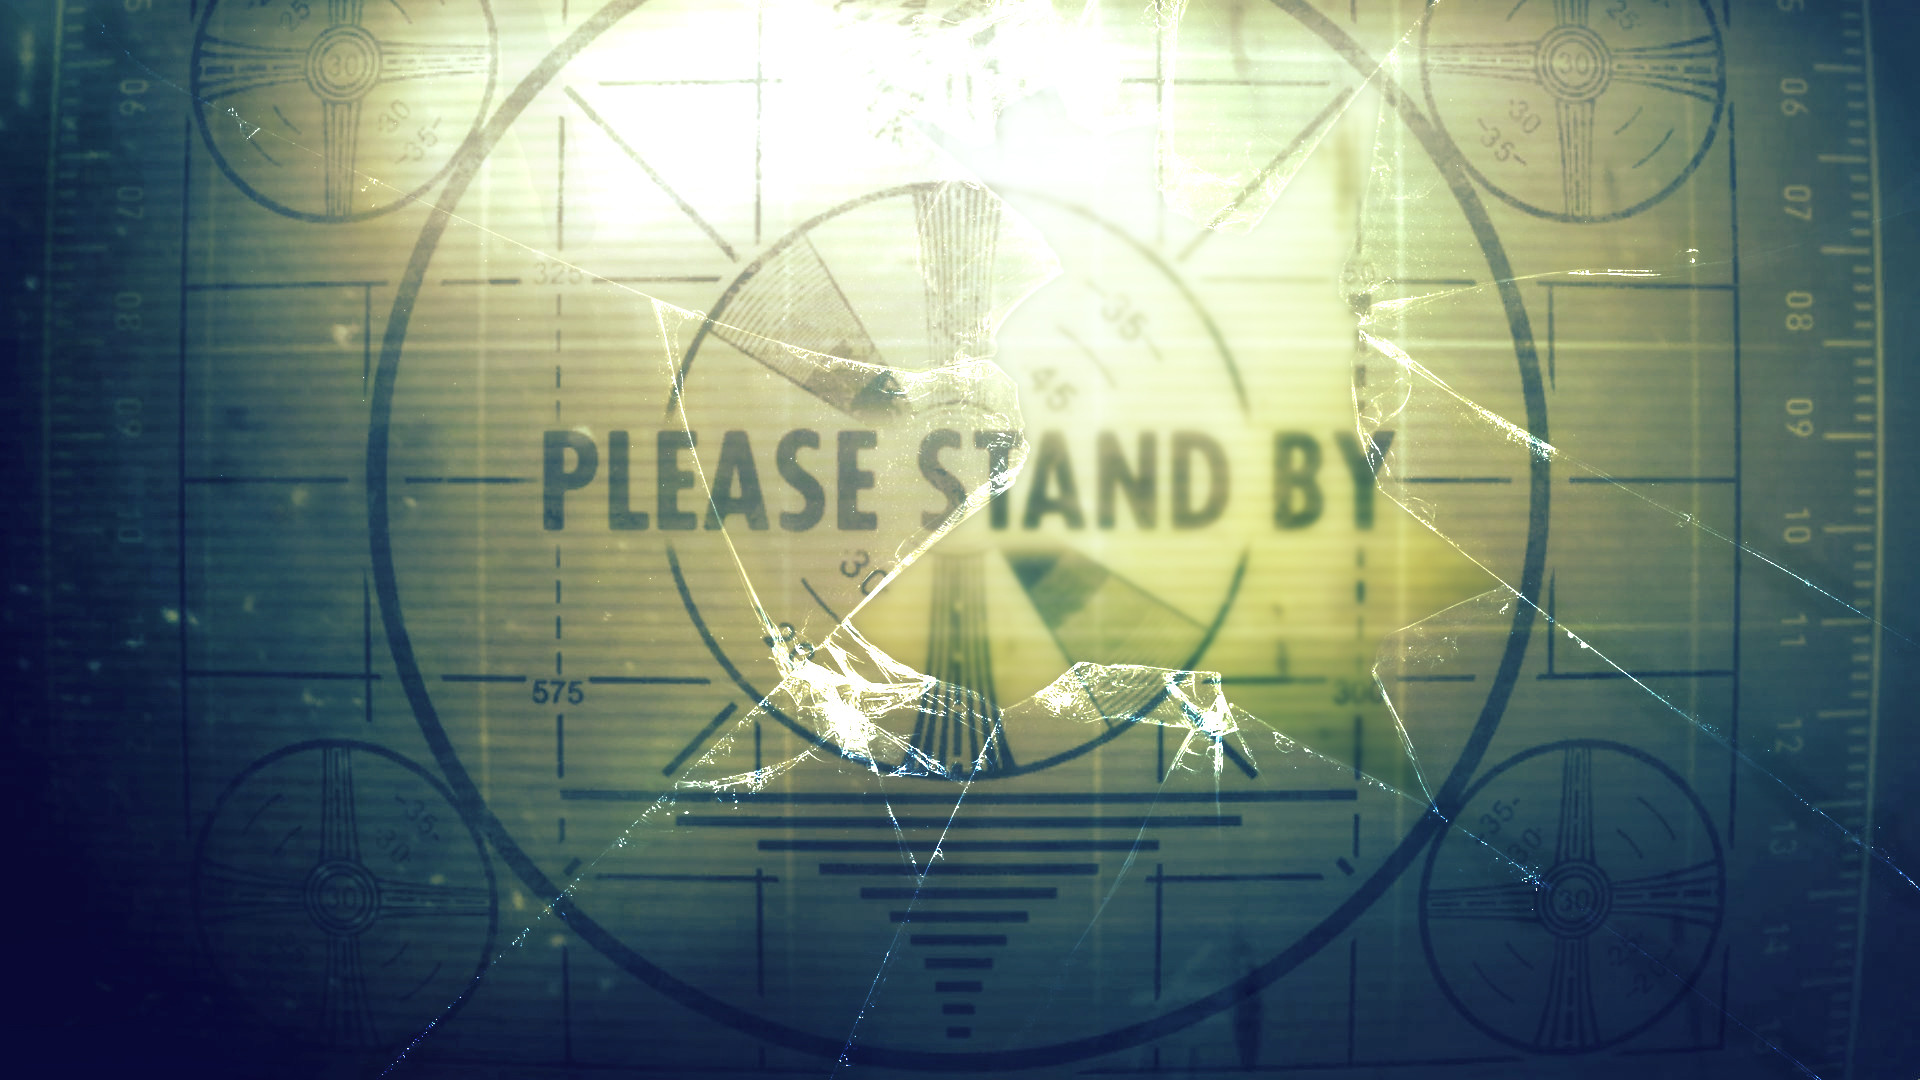 … fallout wallpaper hd image gallery hcpr …